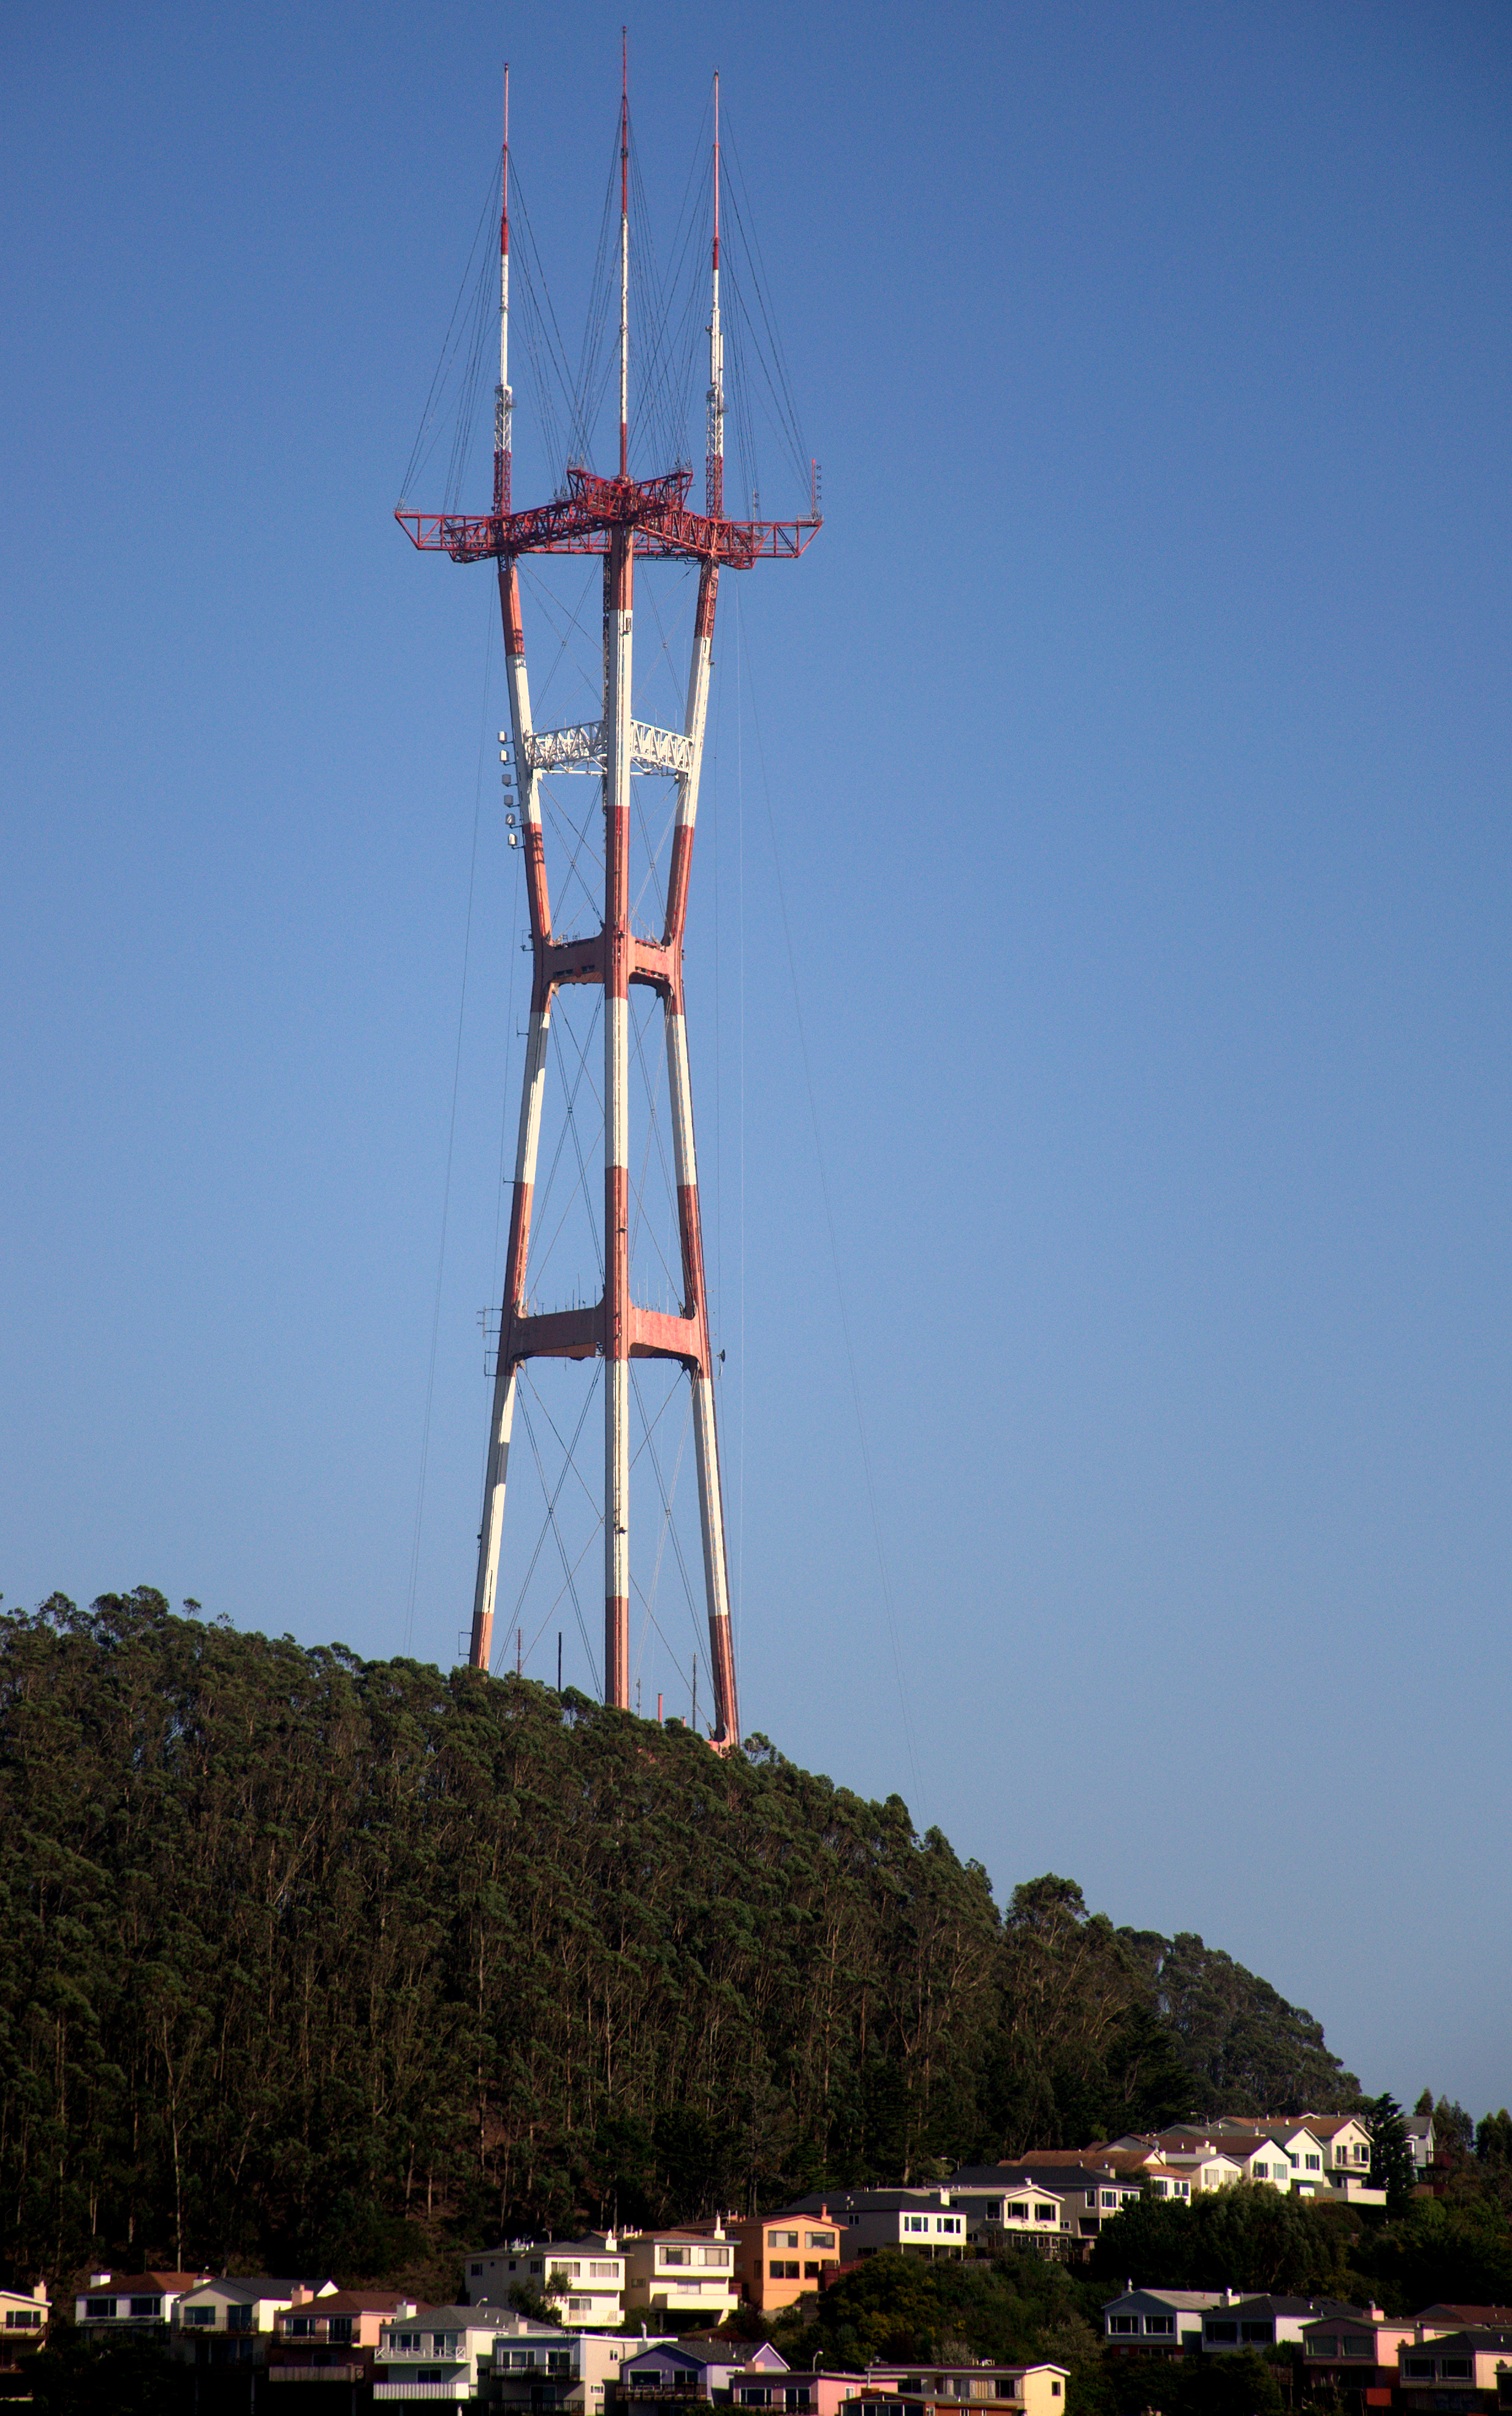 One of the most visible icons in the Bay Area, Sutro Tower stands 997 feet tall and delivers signals for television and radio stations as well as technology companies.